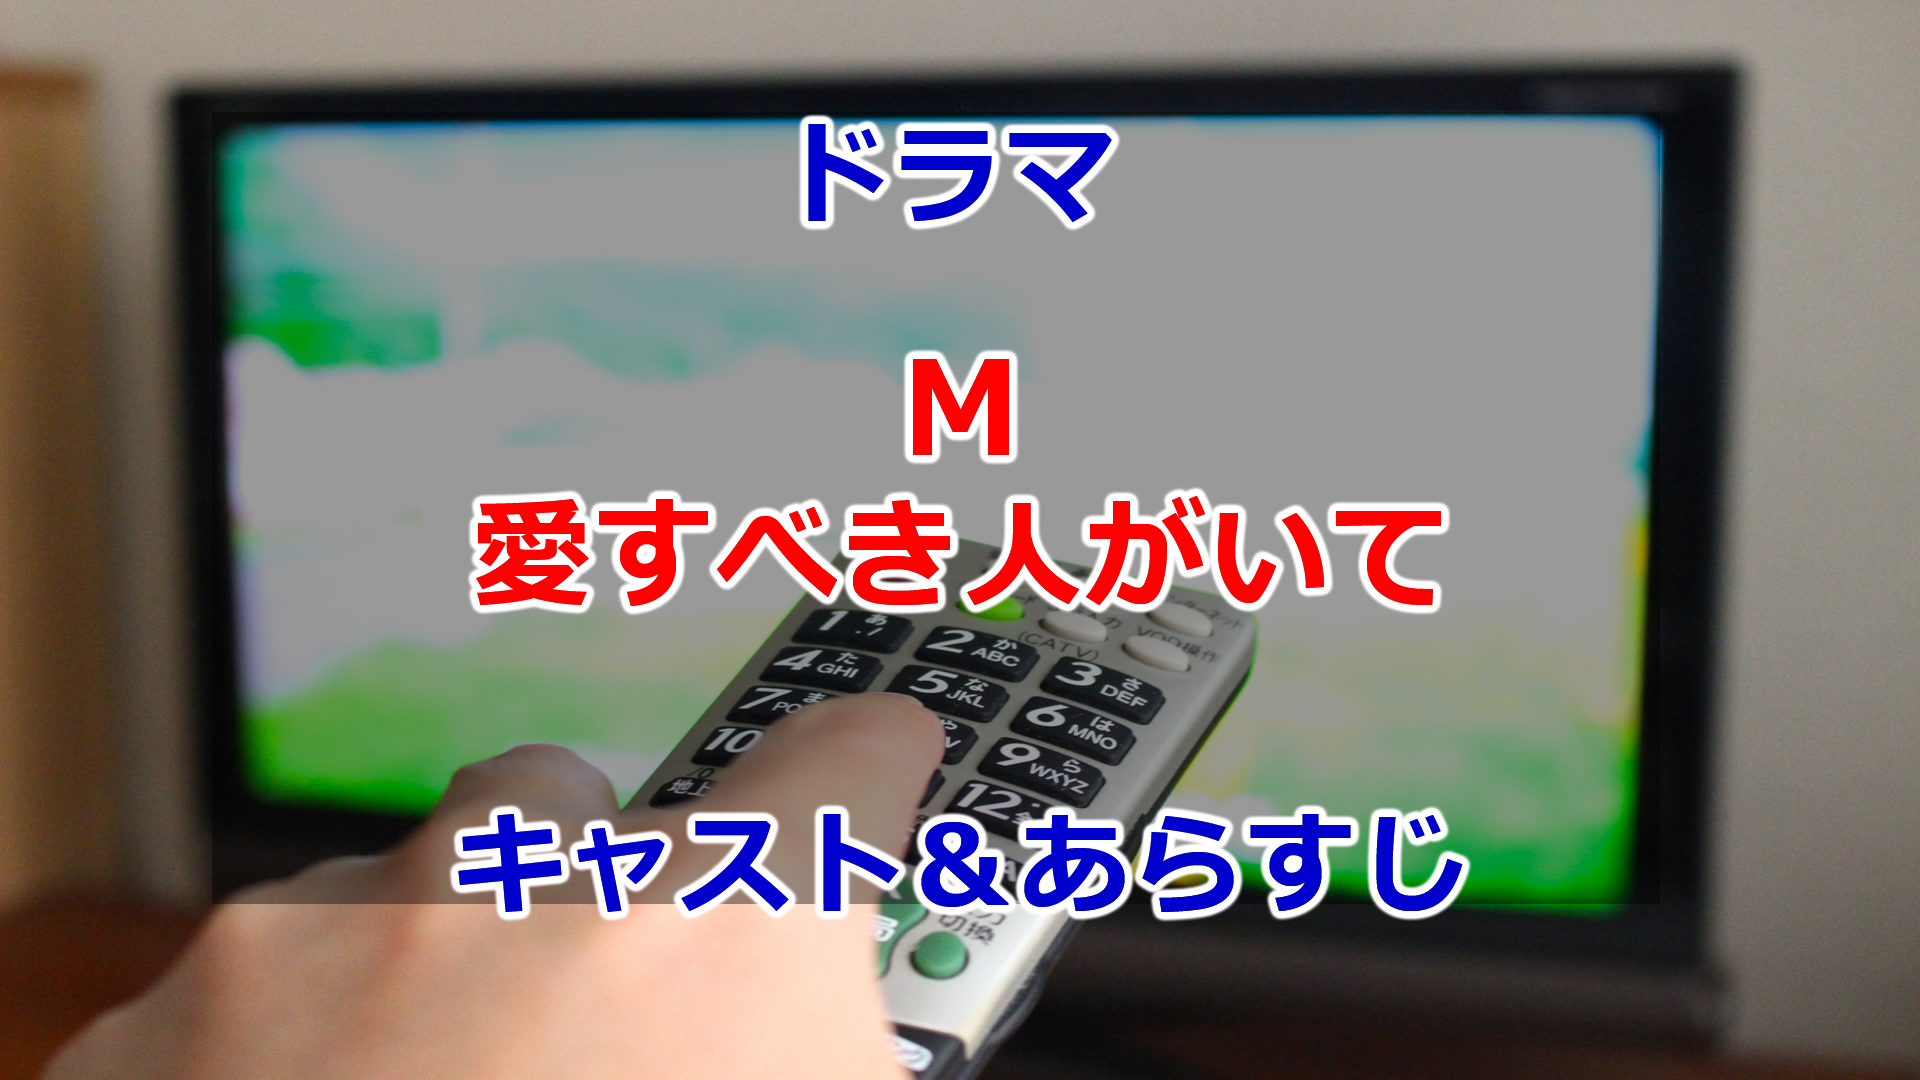 m 愛す べき 人 が いて キャスト